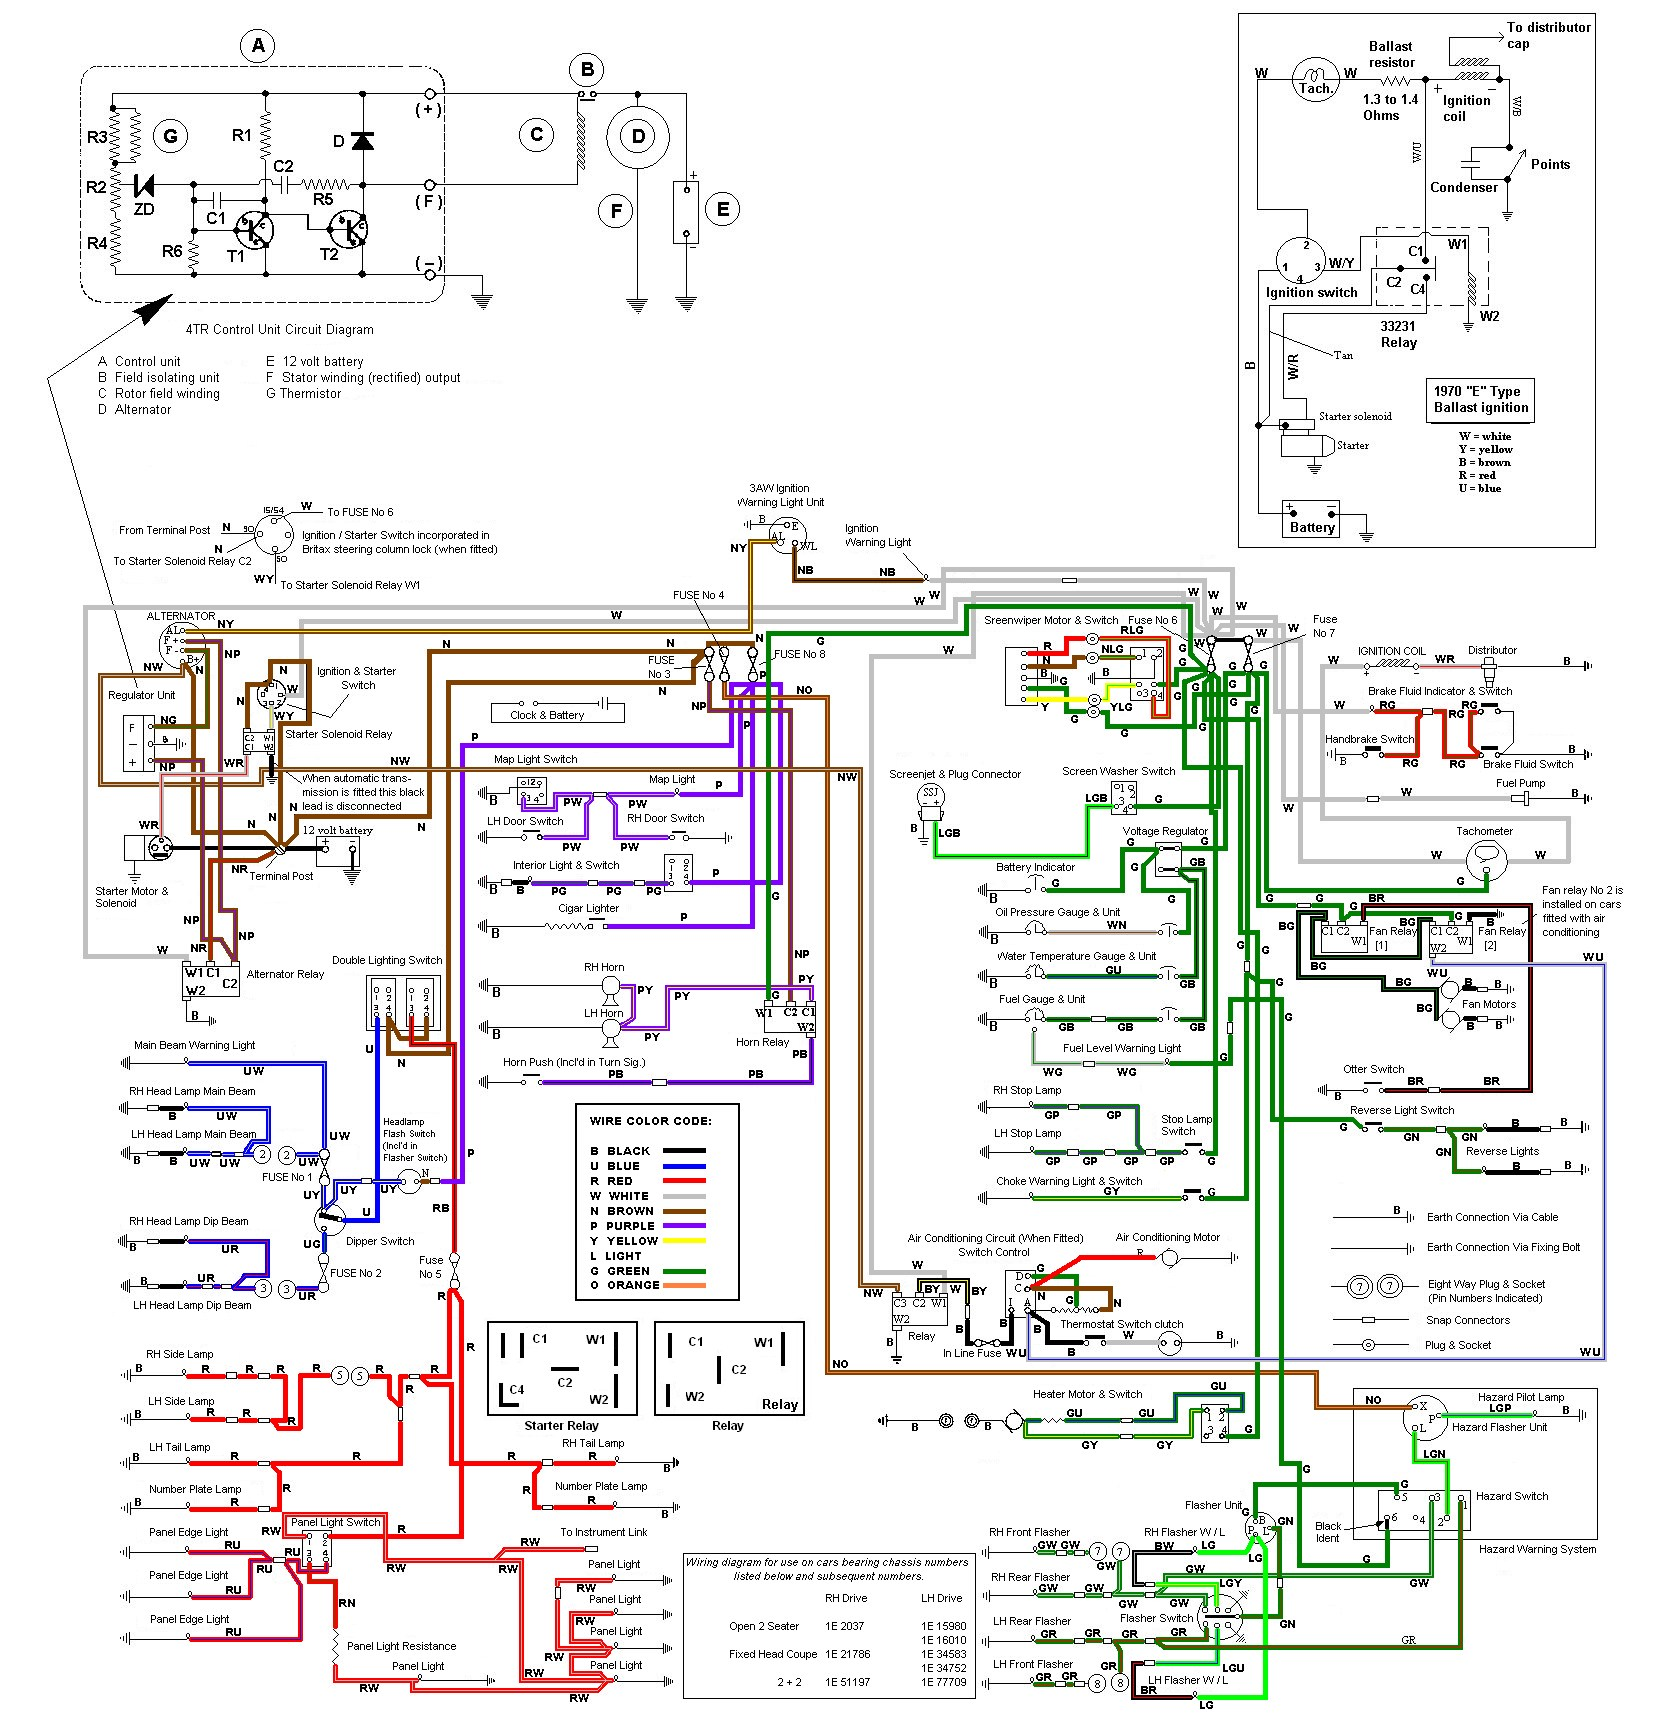 show wiring diagrams human brain diagram and functions jaguar e type series 1 free engine